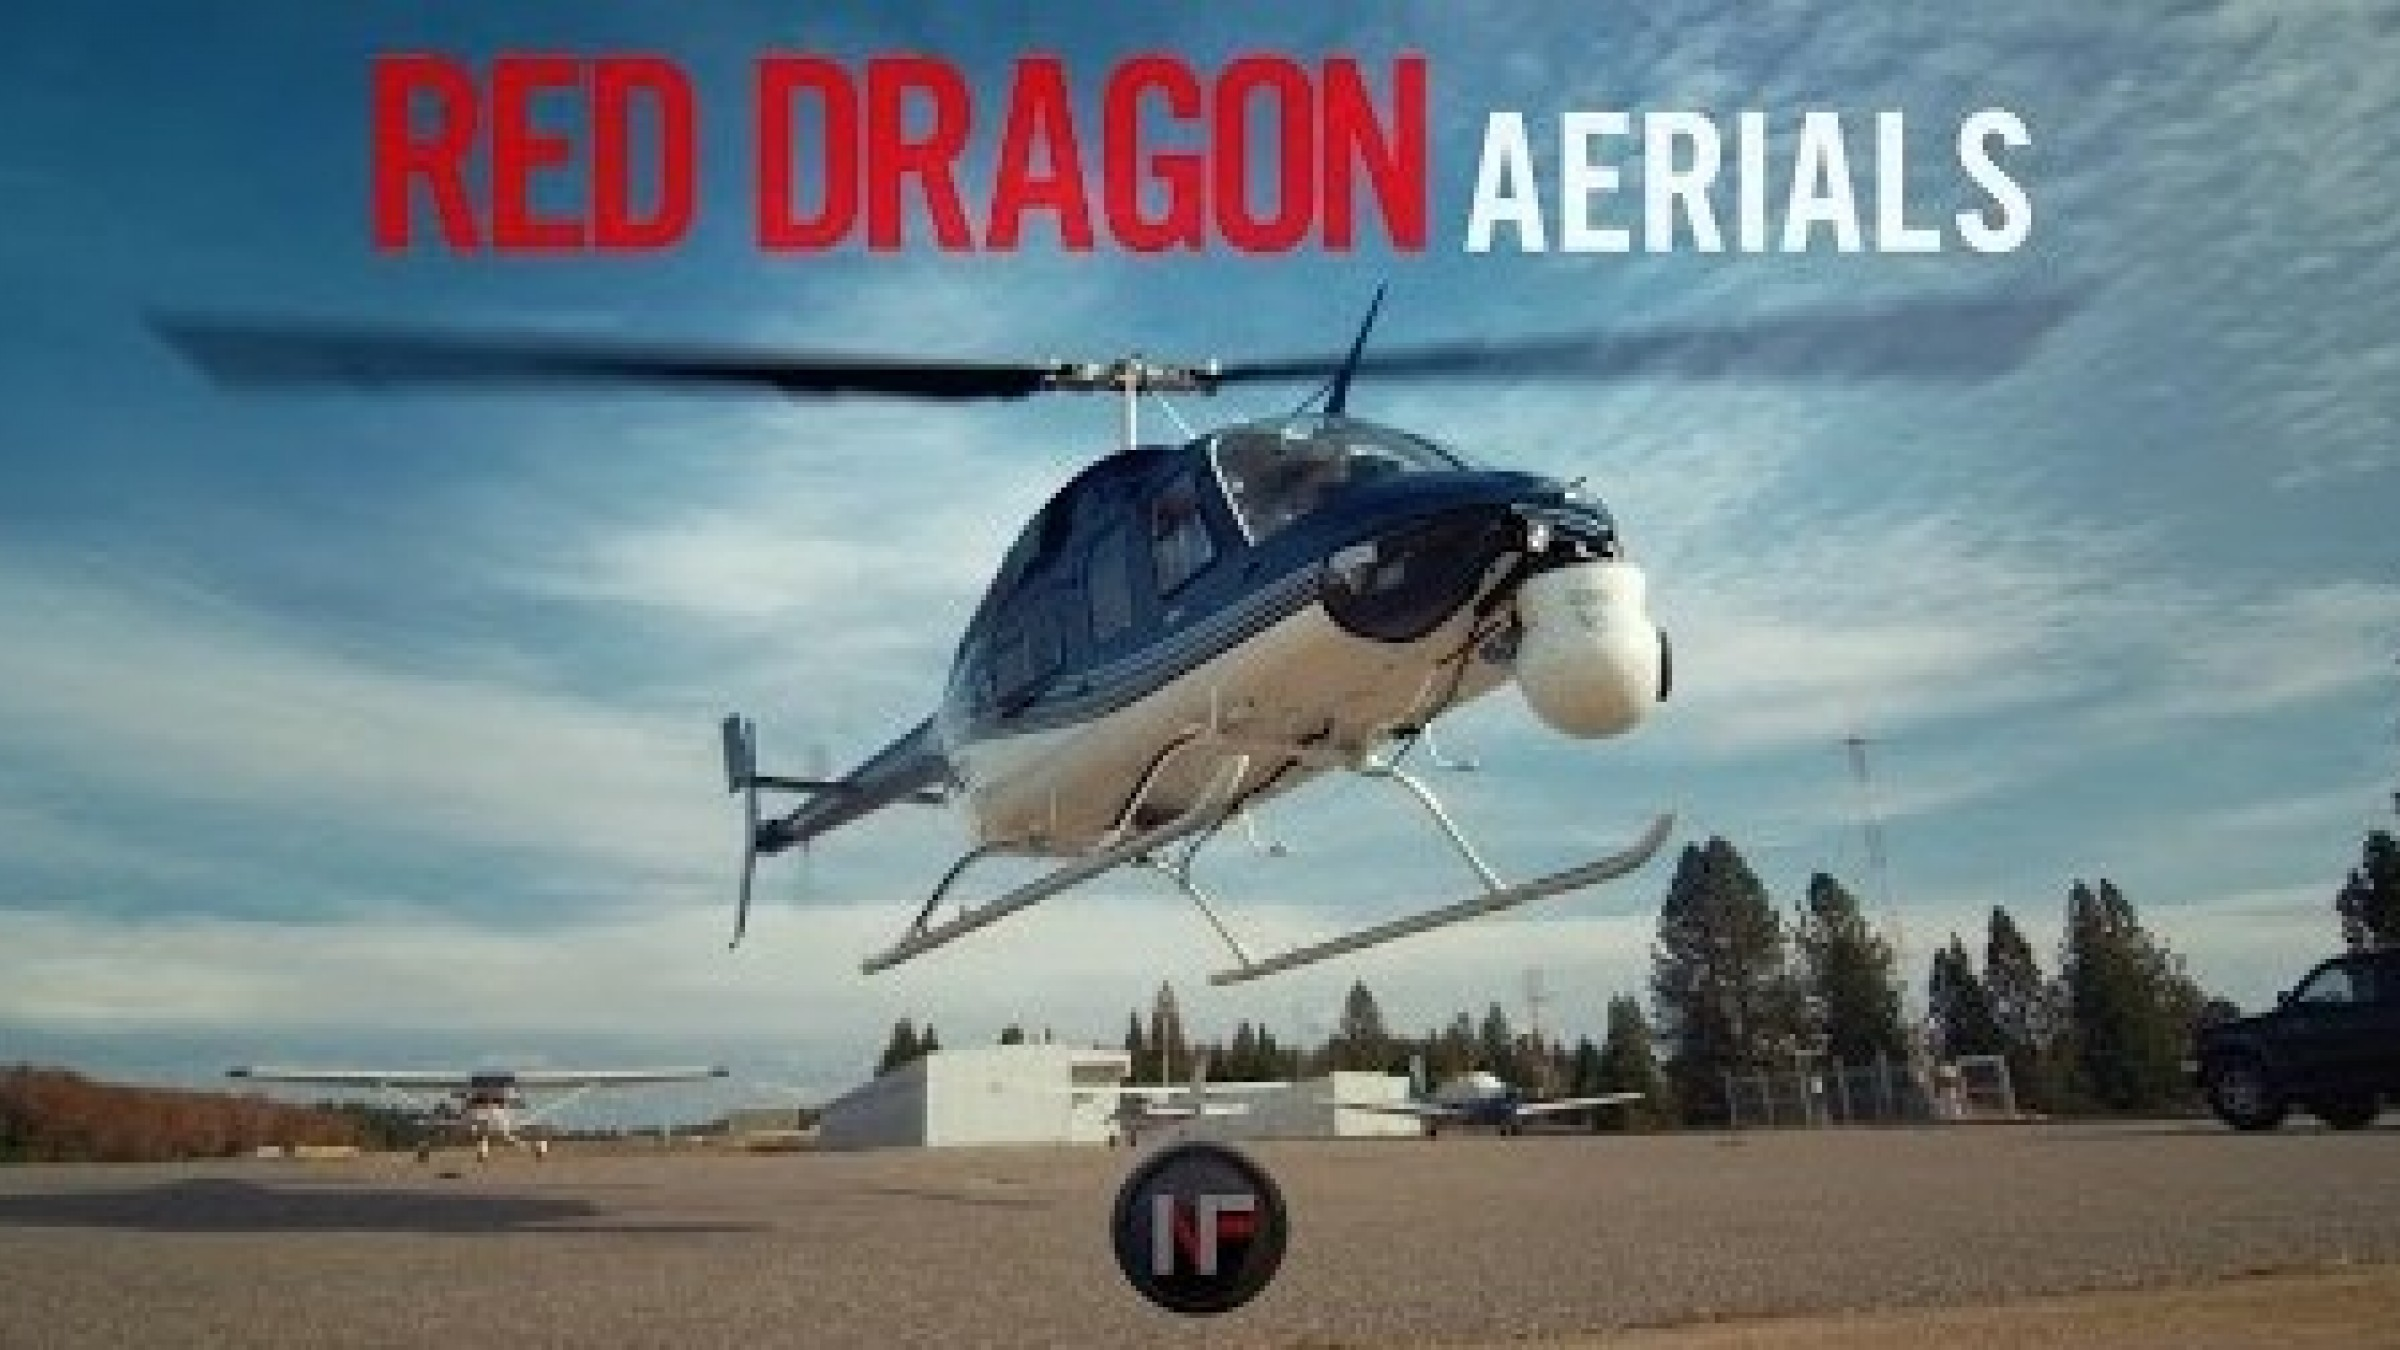 6K RED DRAGON Goes Airborne for These Gorgeous Aerials